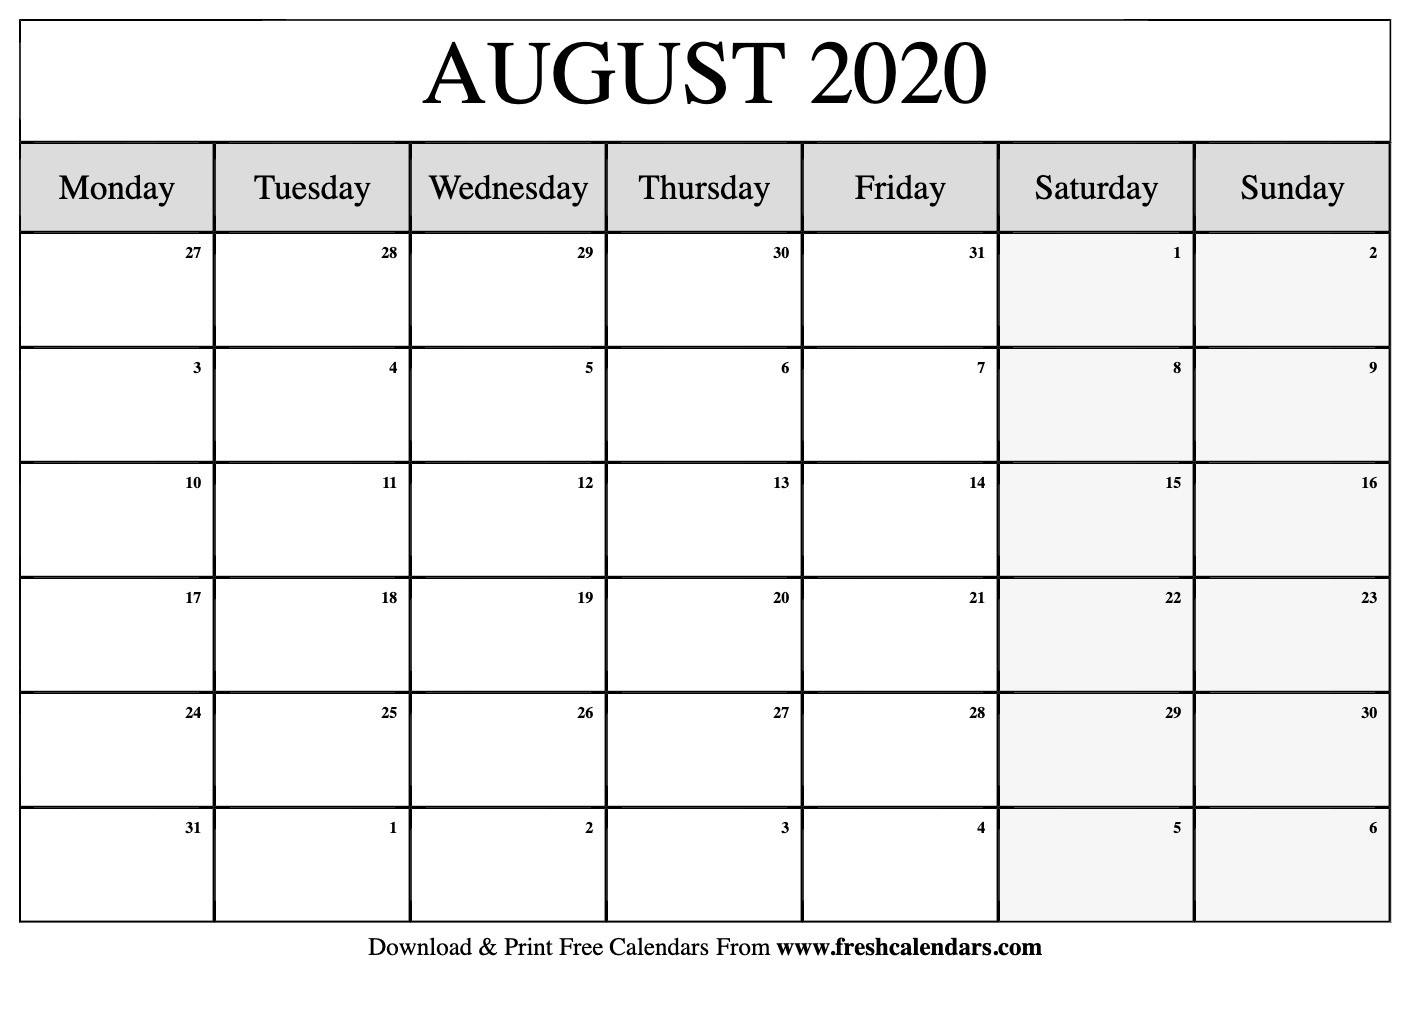 August 2020 Calendar Printable - Fresh Calendars-Monthly Planner June July August2020